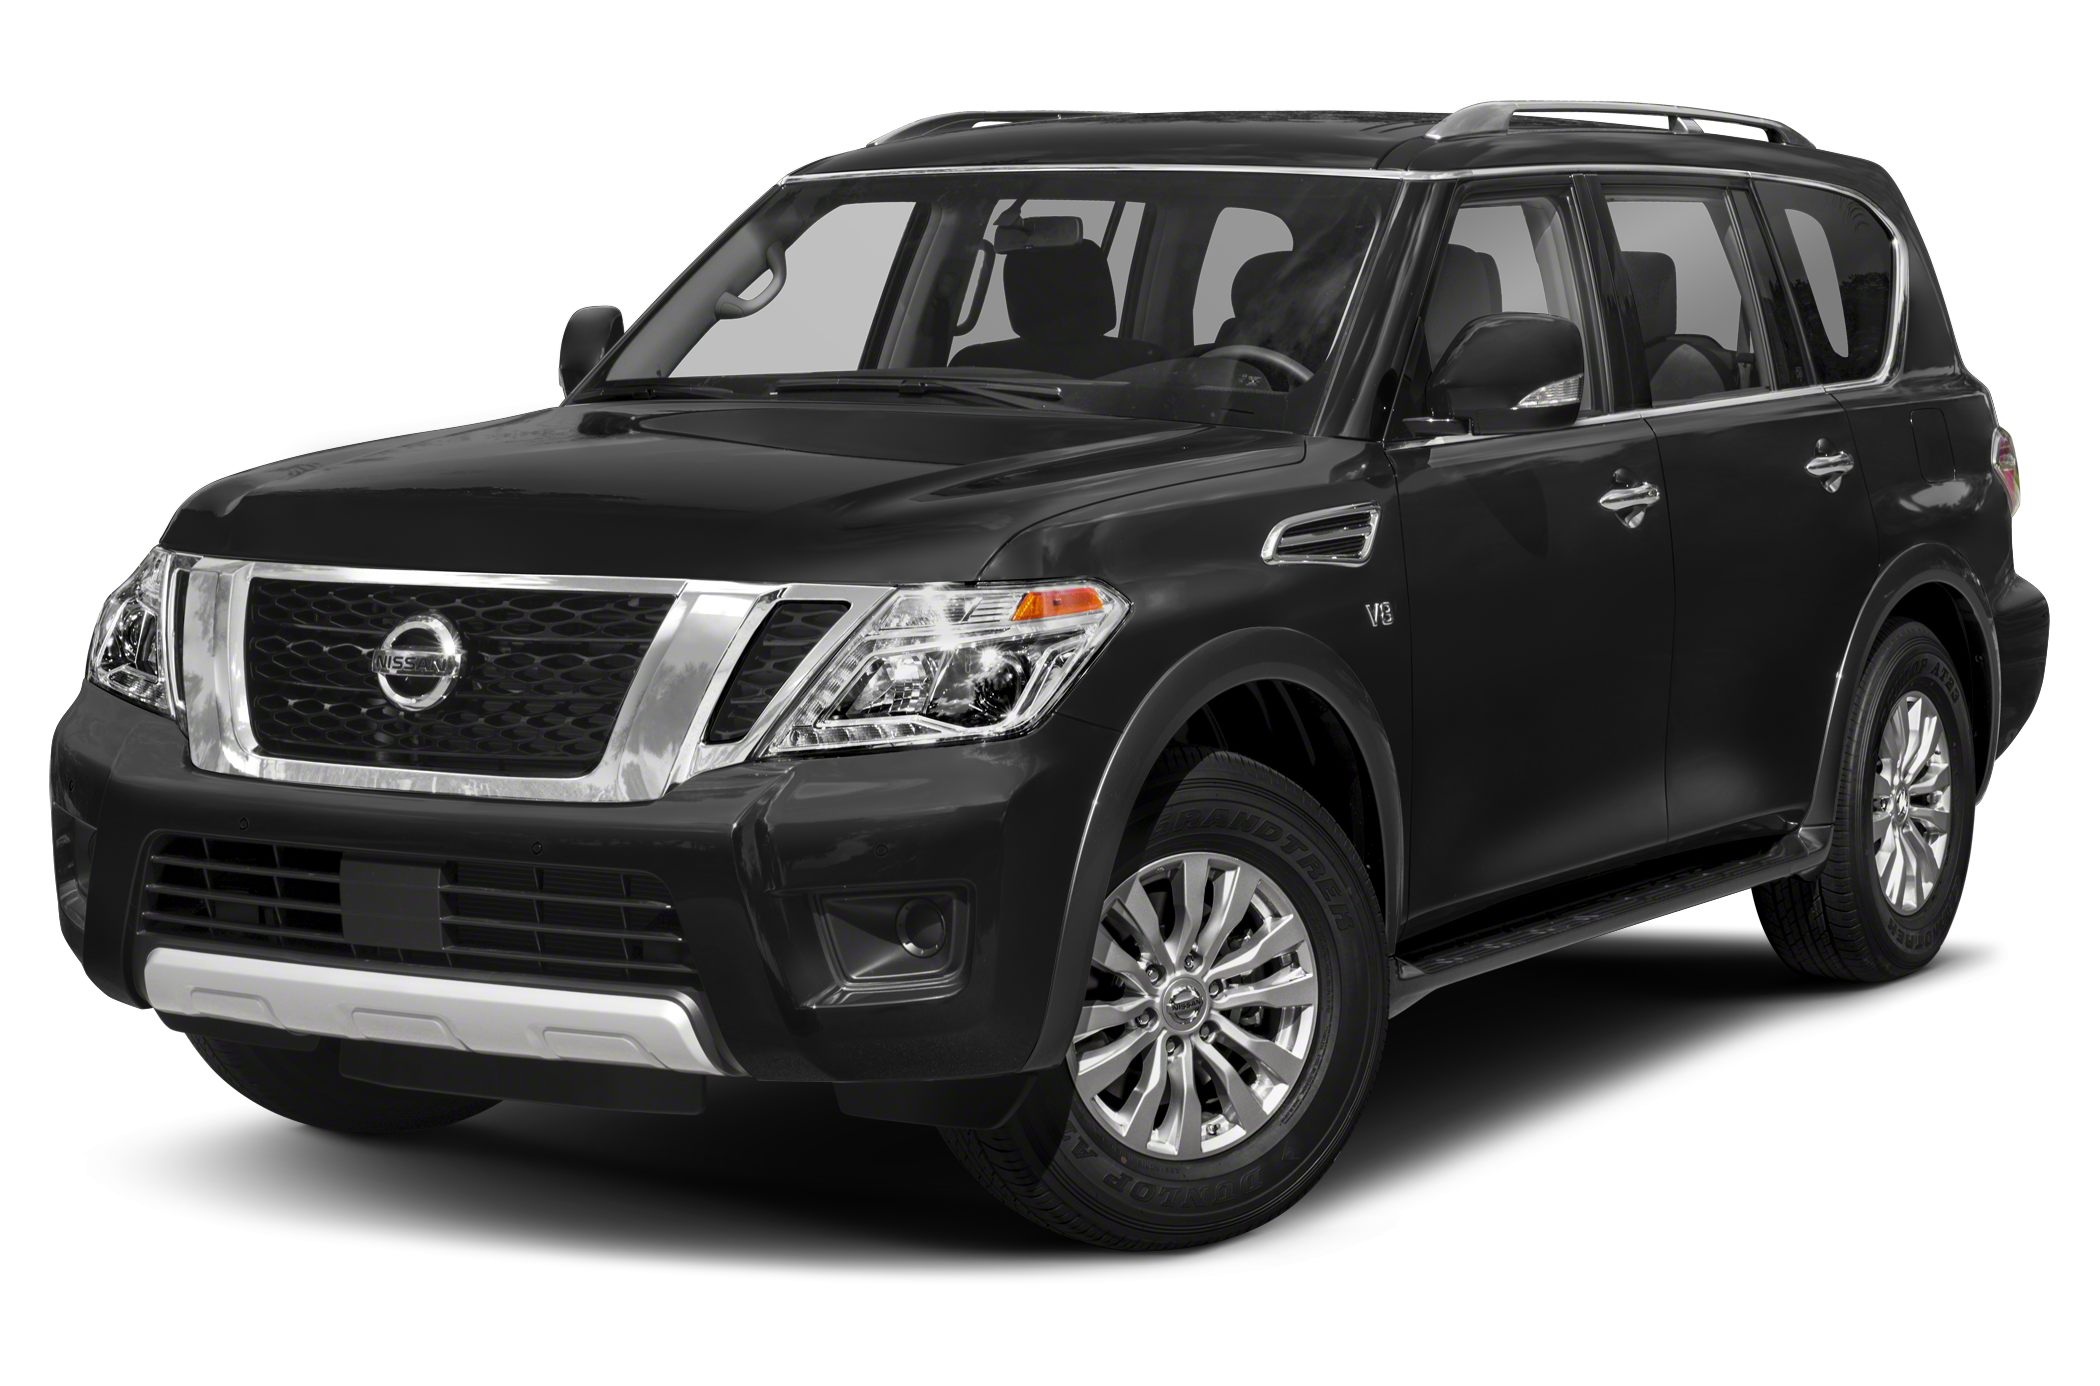 Nissan Certified Pre Owned >> 2008 Nissan Armada Photo Gallery - Autoblog